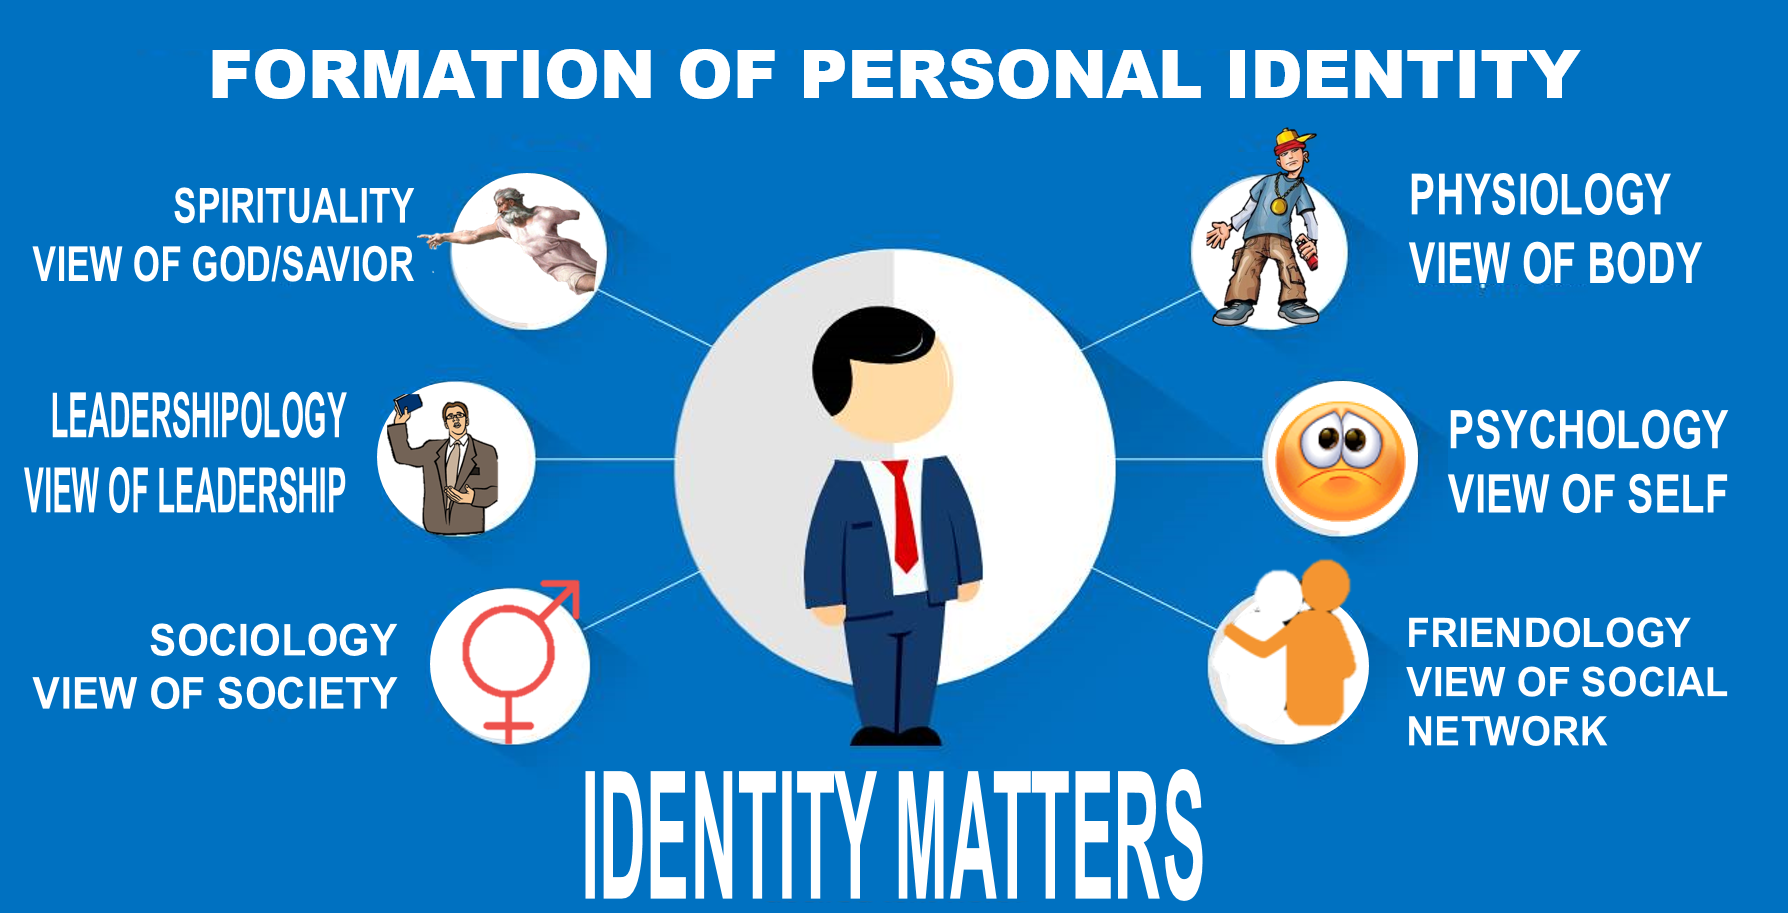 Formation of Identity